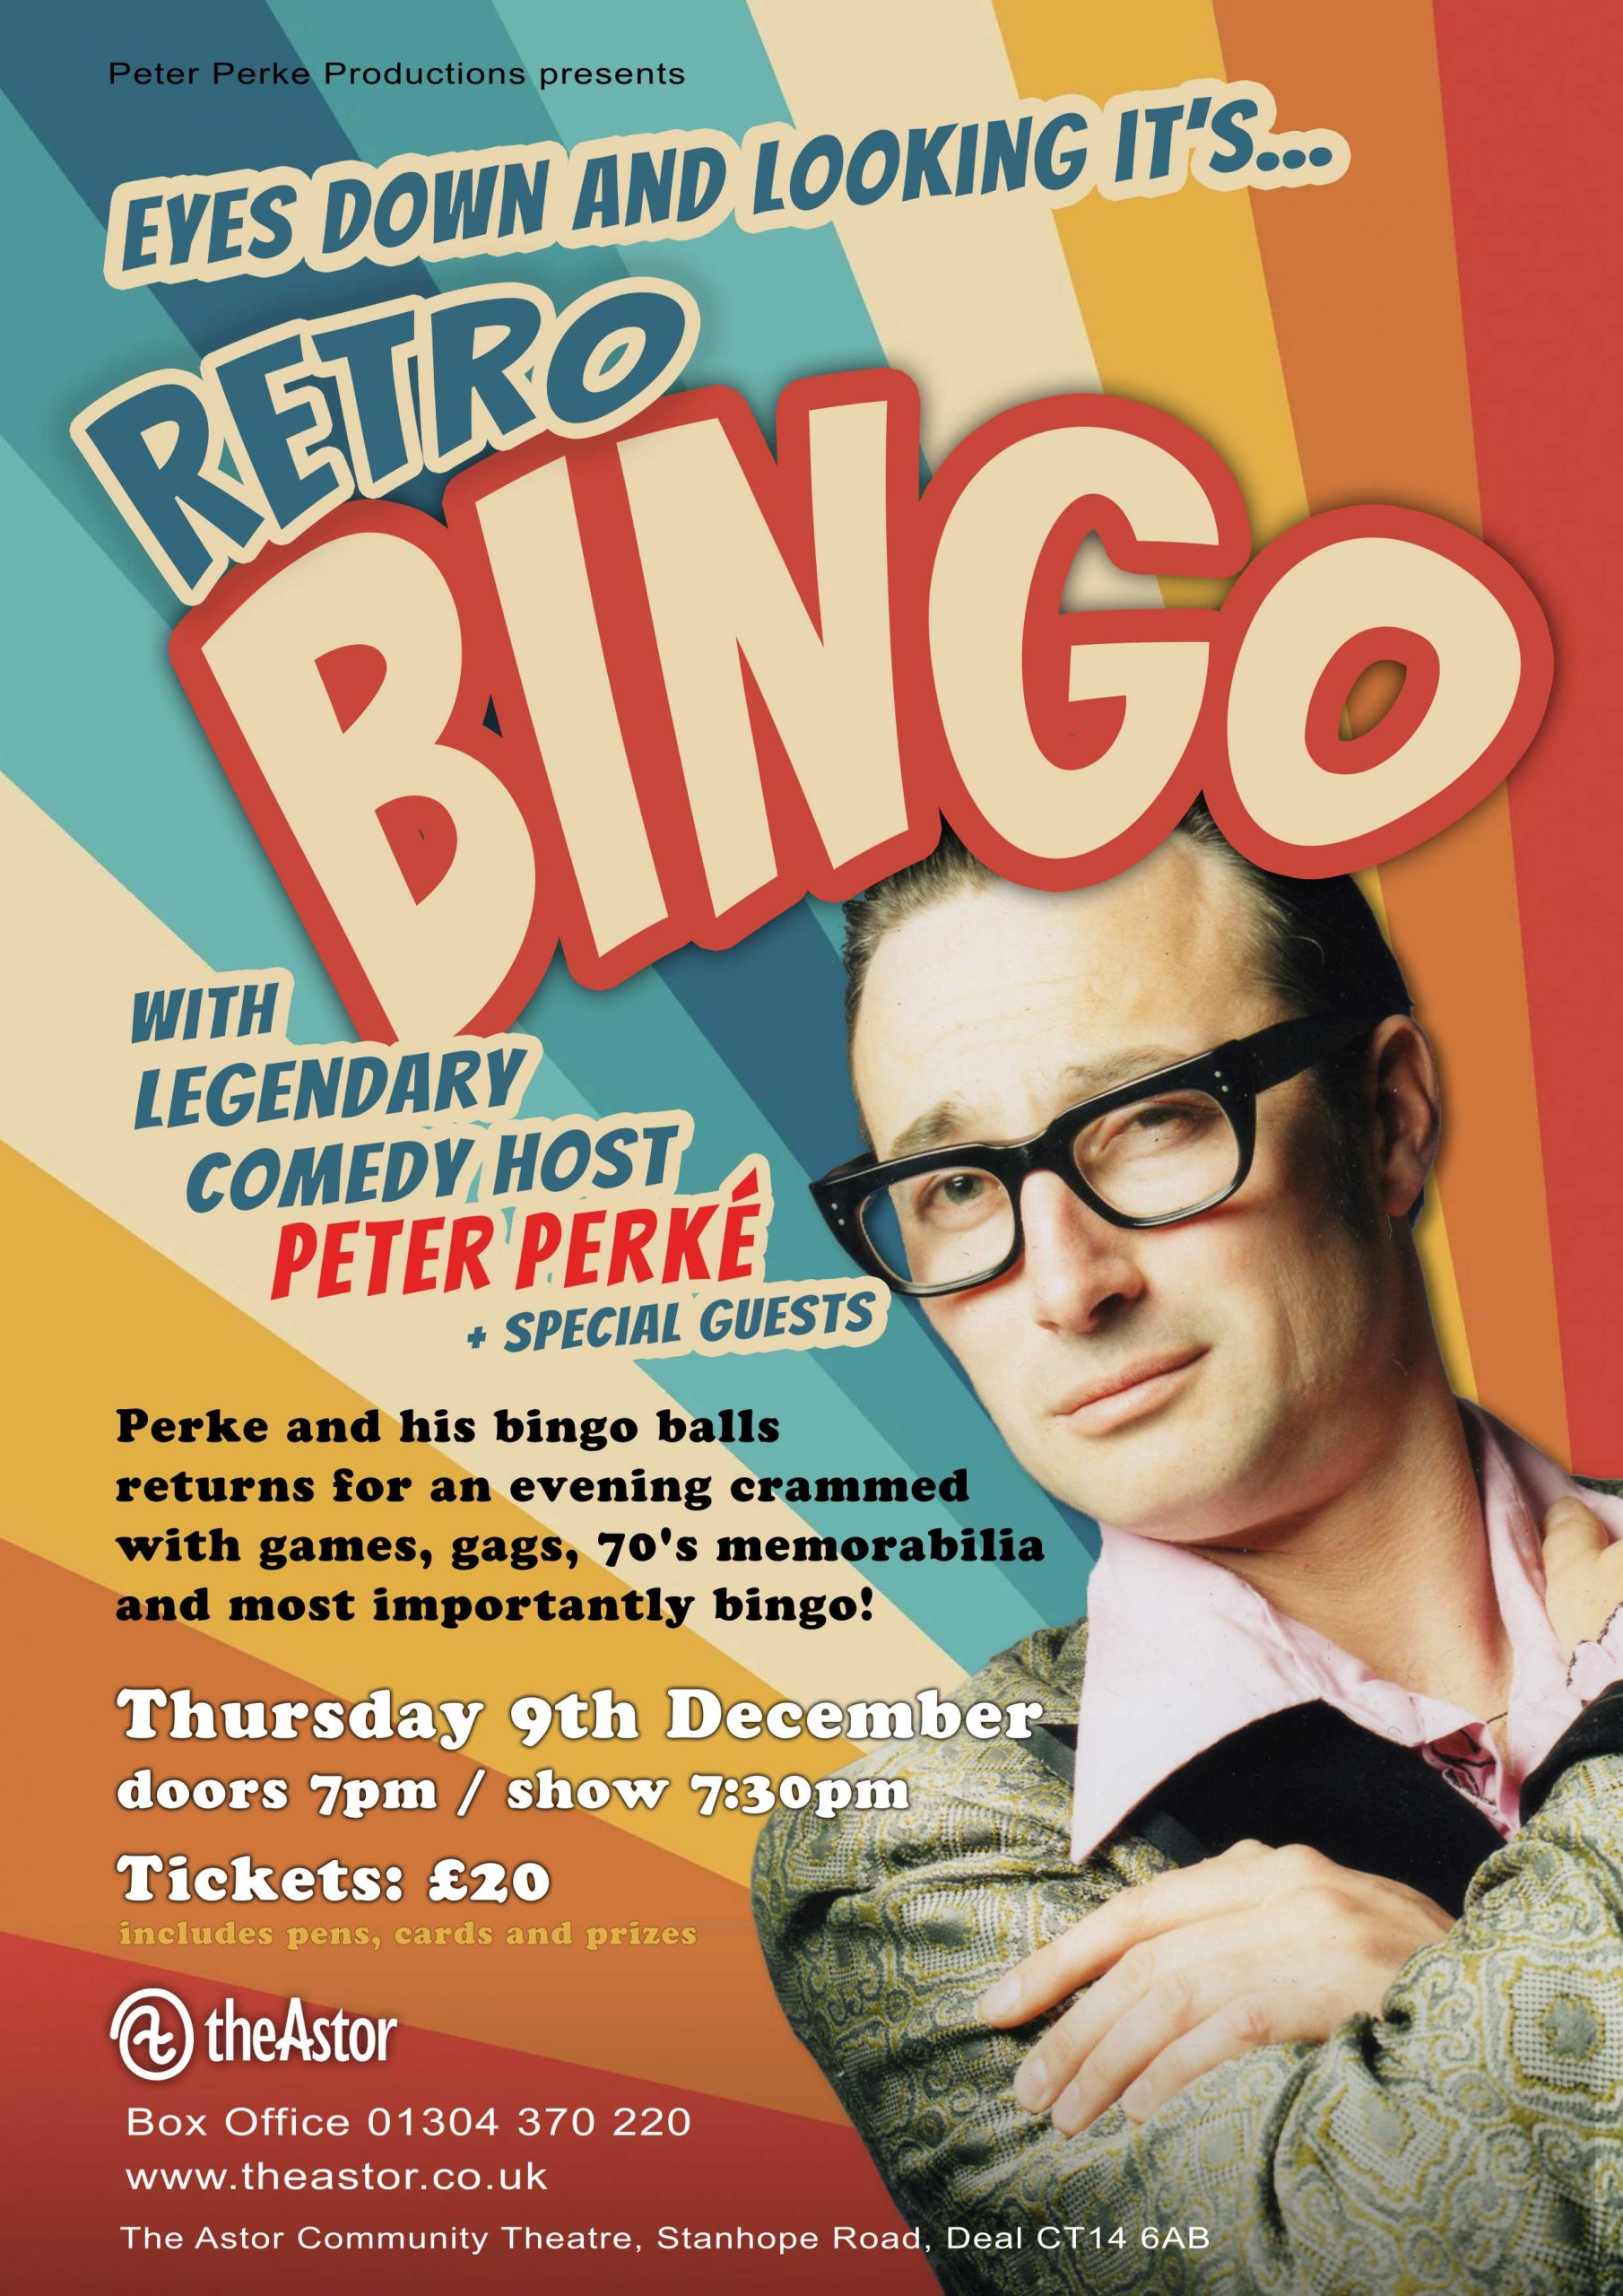 Poster promoting a Bingo night at The Astor Theatre in Deal on 9th December 2021. Man dressed in retro clothing and wearing glasses with his arms crossed over his chestng